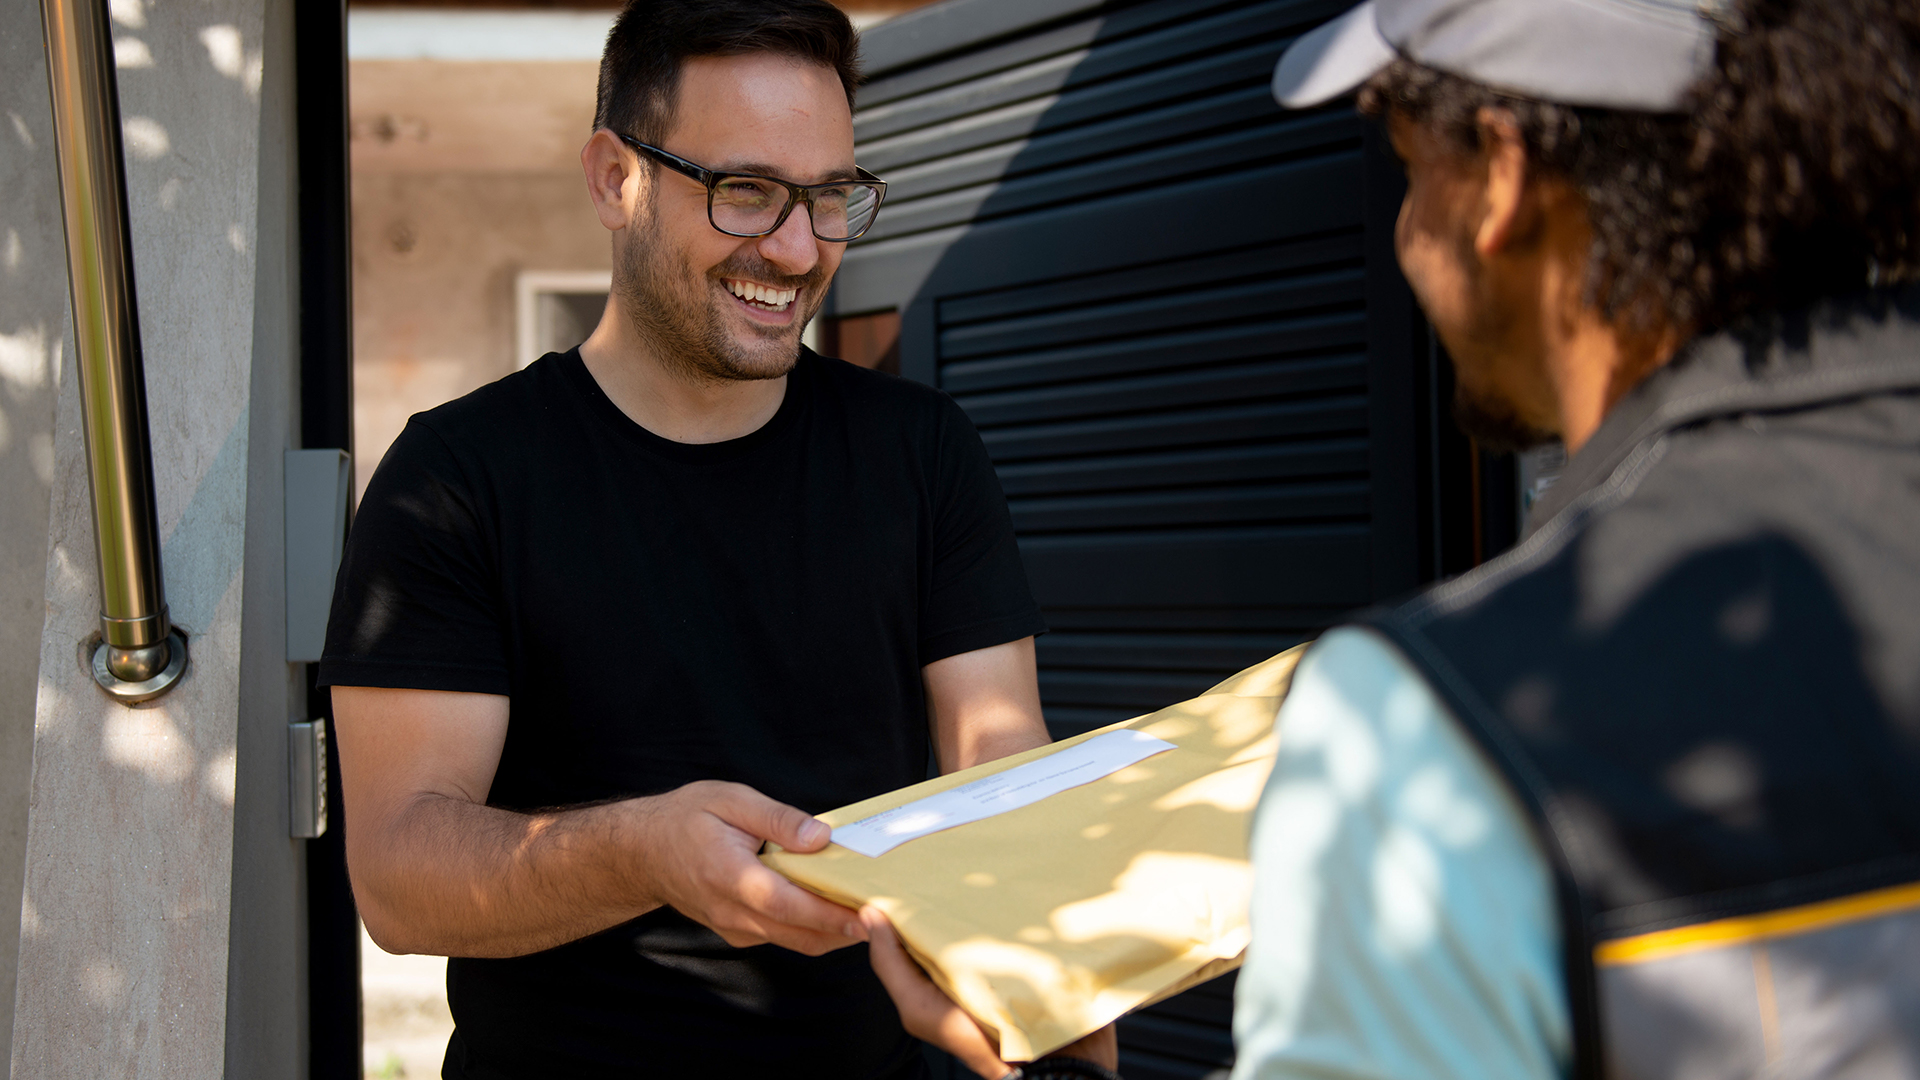 Person receiving package at home